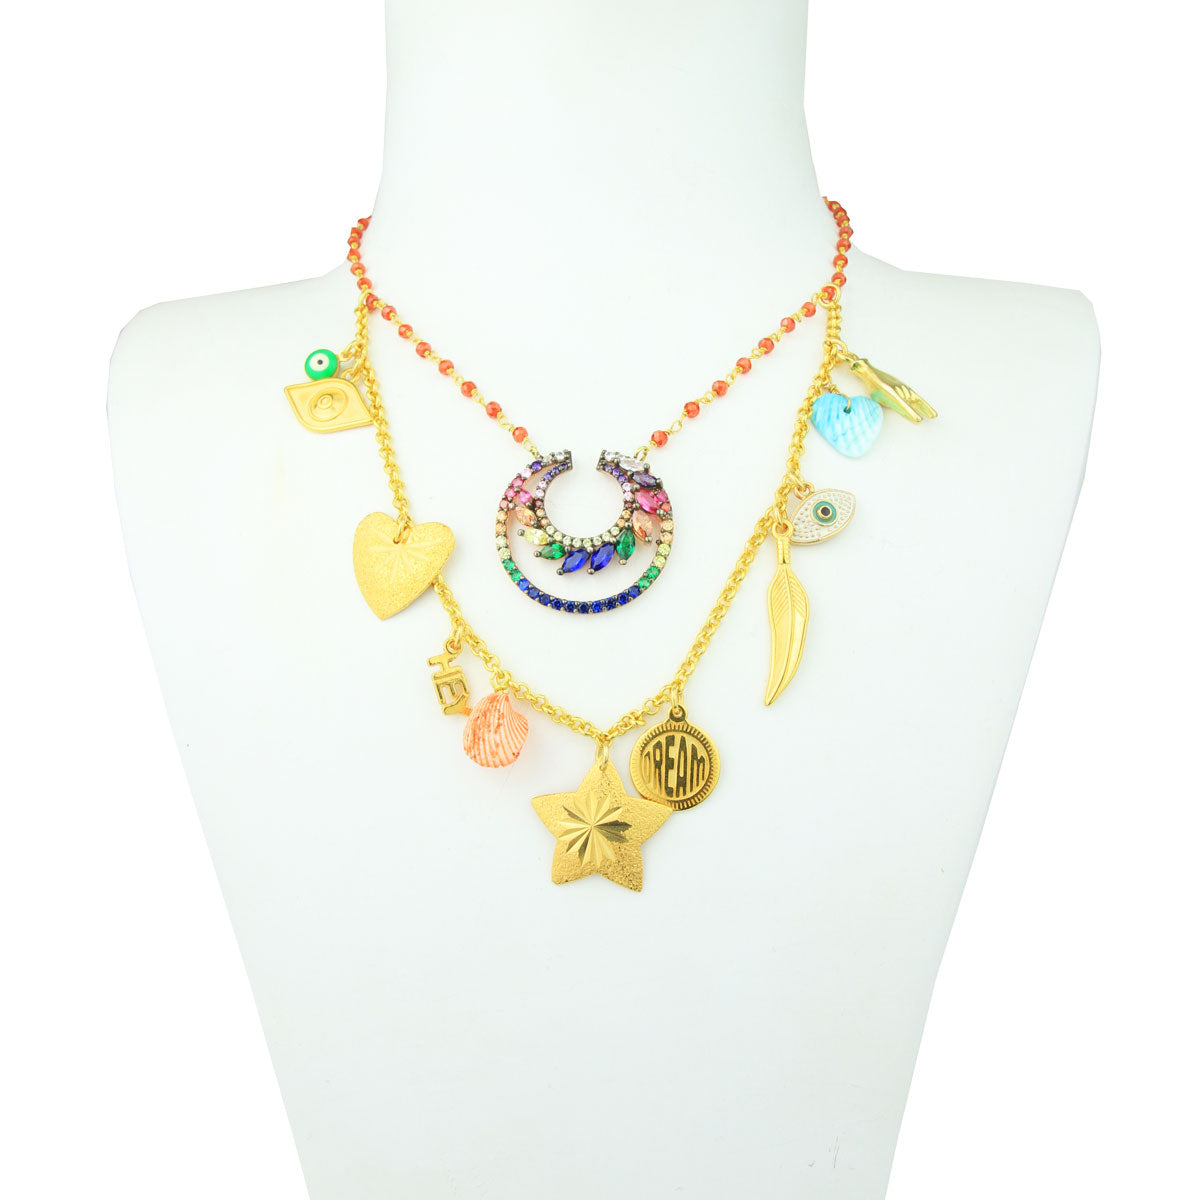 93713af10e6 Lucilla Double Low Short Necklace with Shells, Charms and Zirconia ...